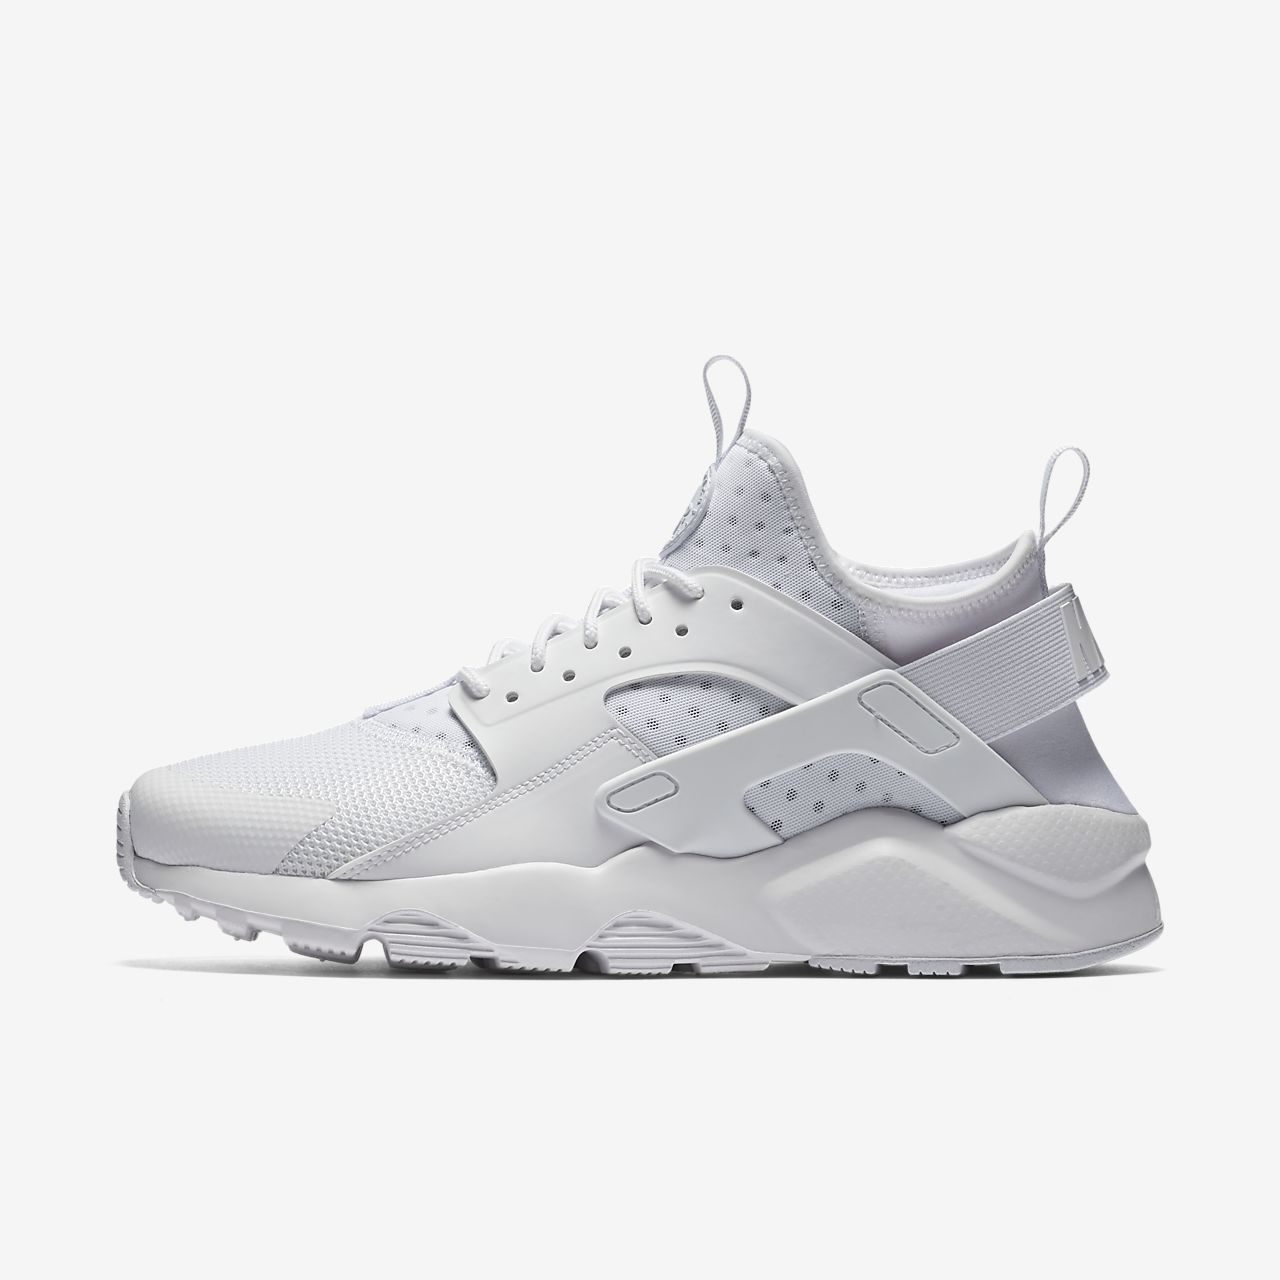 32e7f7adafd7 Low Resolution Nike Air Huarache Ultra Men s Shoe Nike Air Huarache Ultra  Men s Shoe